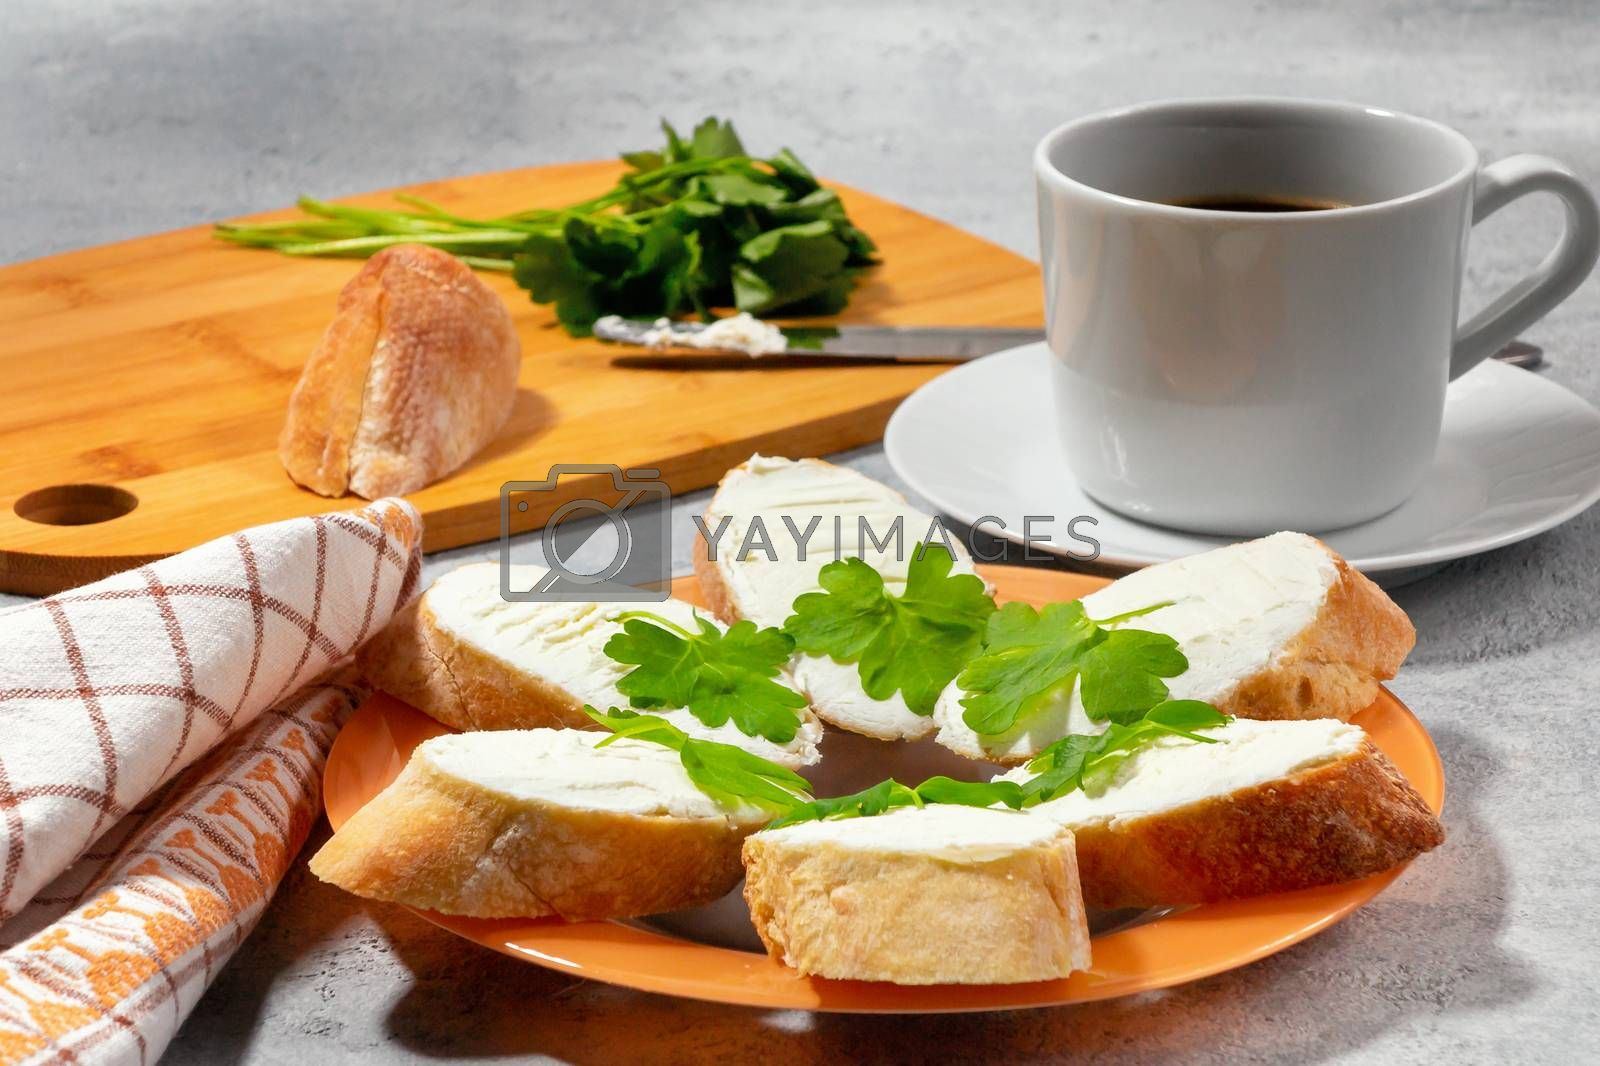 Freshly made sandwiches with cream cheese and parsley on a plate, chopping wooden board and a cup of coffee - morning and breakfast concept by galsand